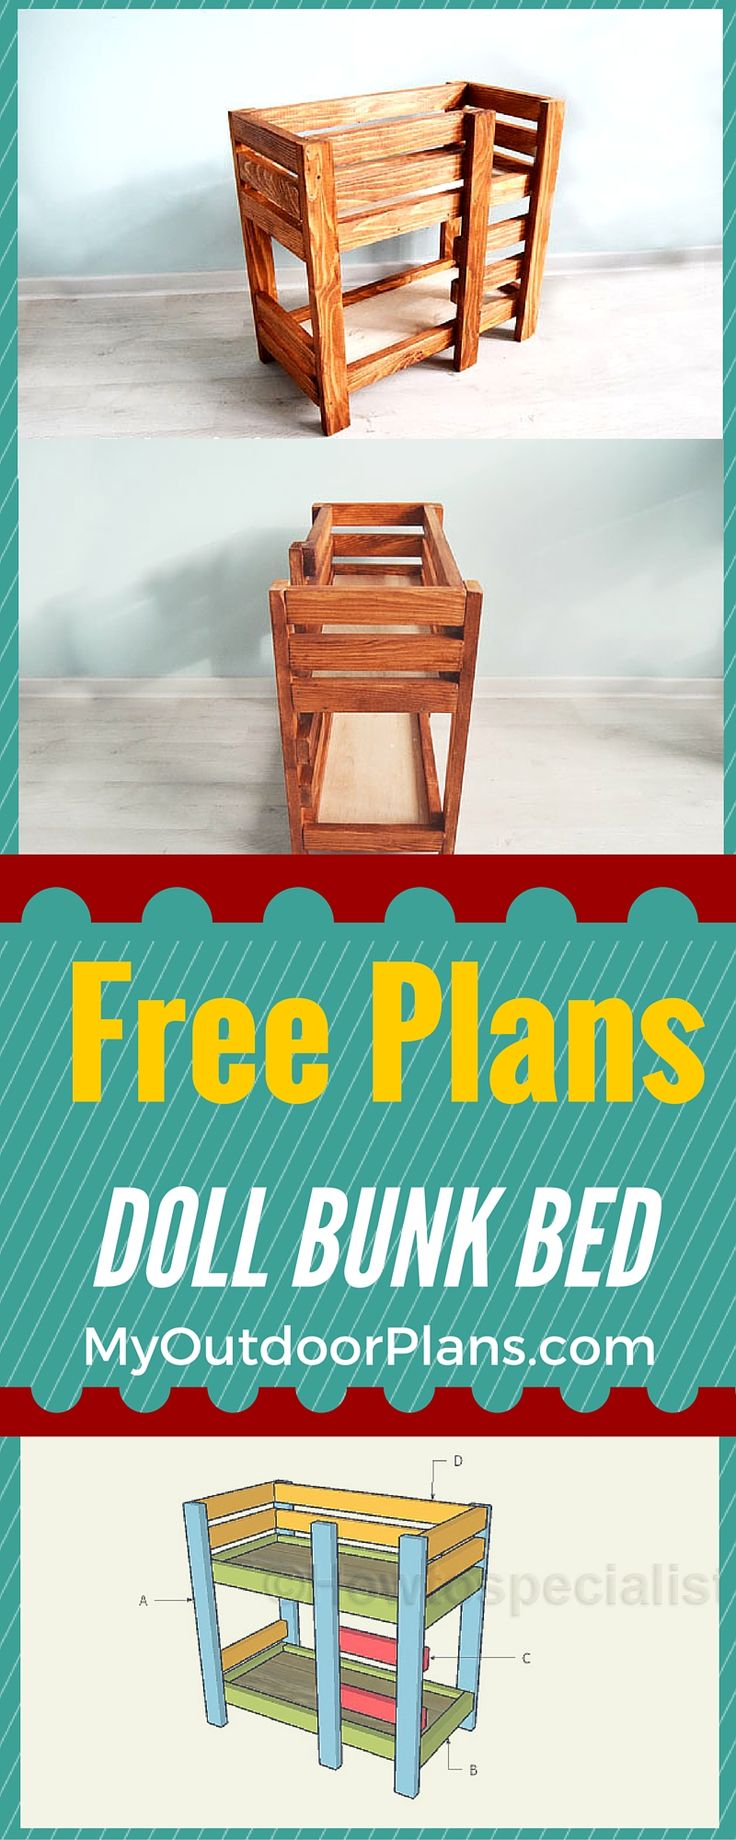 "Easy to follow doll bunk bed plans - Learn how to build a 18"" american doll bunk bed from 1x2s and brad nails! It is that simple to create a handcrafted gift! Plans at howtospecialist.com"